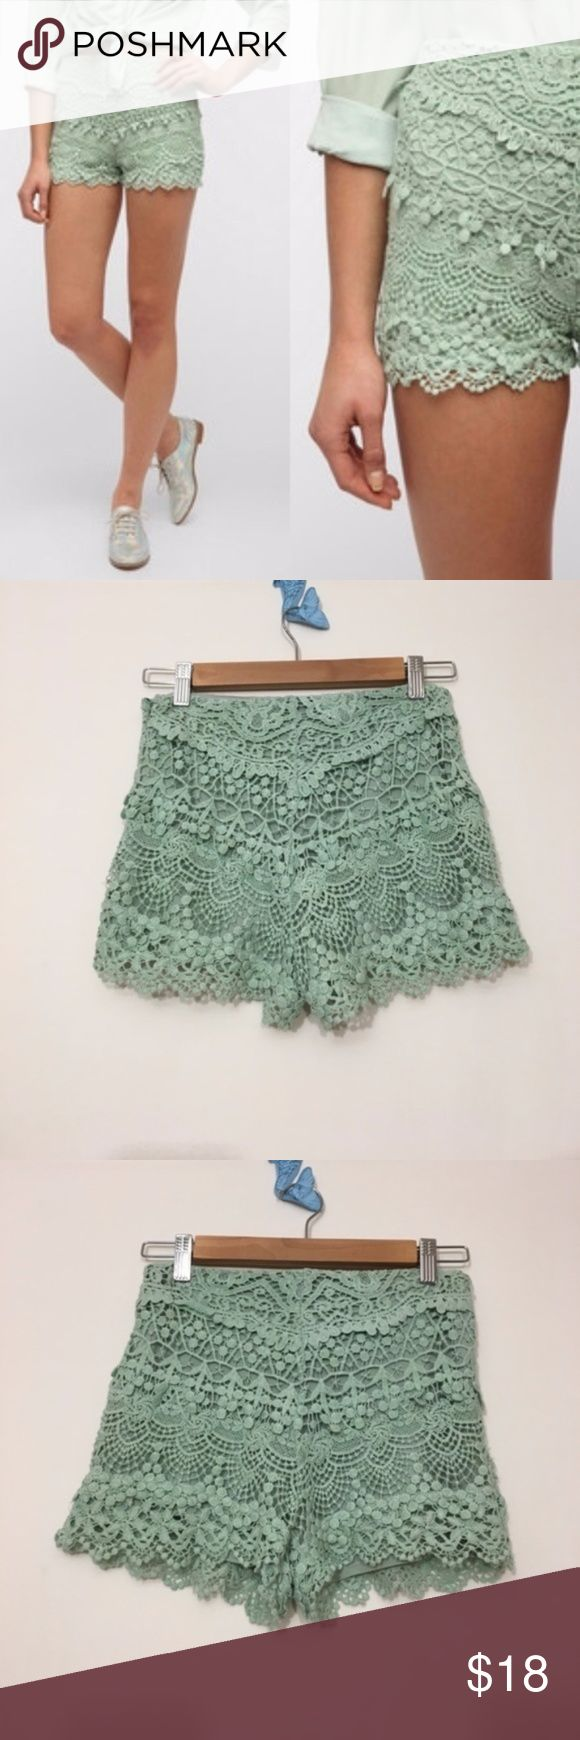 """🆕 Urban outfitters KIMCHI BLUE lace tap shorts 🆕 Urban outfitters KIMCHI BLUE lace anthea tap shorts  SIZE 0  New, unworn condition; no tags attached.  Little lace tap short from Kimchi Blue. Soft cotton construction with angled layers of lace.   Hidden zipper at the side. Scalloped trim at the hem. Fully lined. High-rise.   Super short 1"""" inseam Urban Outfitters Shorts"""